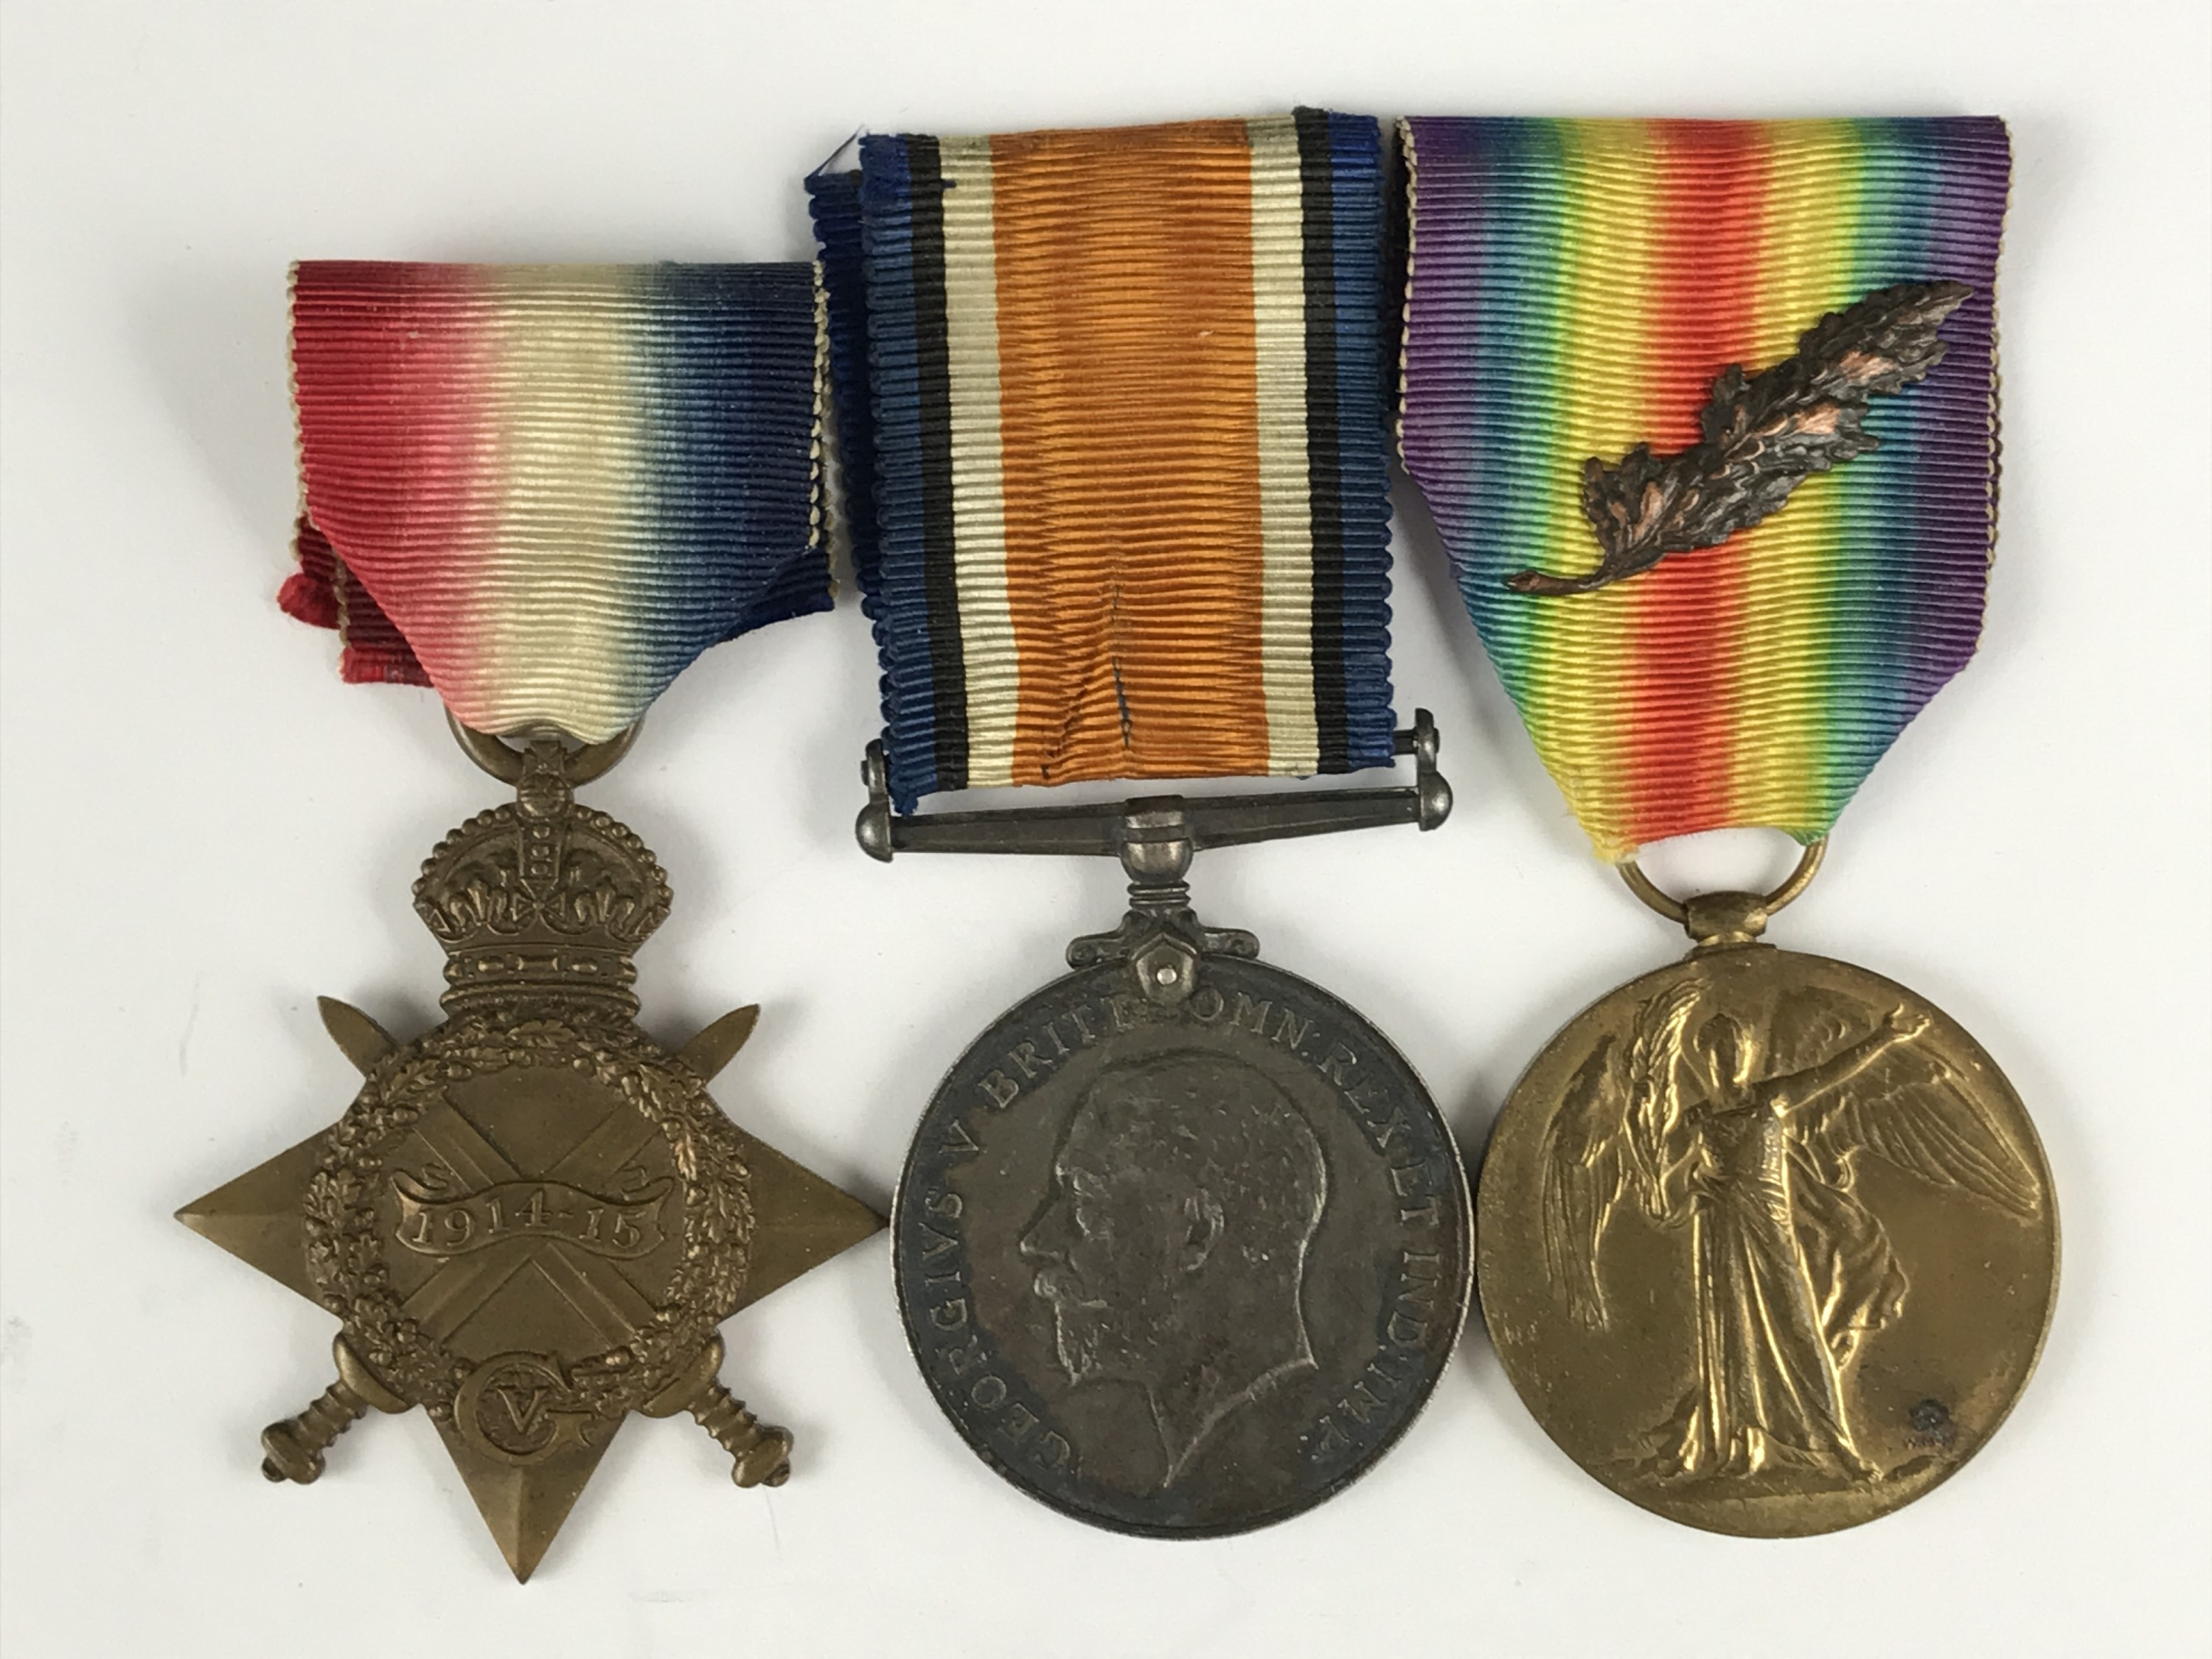 Lot 13 - 1914-15 Star, British War and Victory medals to Lieutenant - Major Hardy-Syms, Royal Engineers